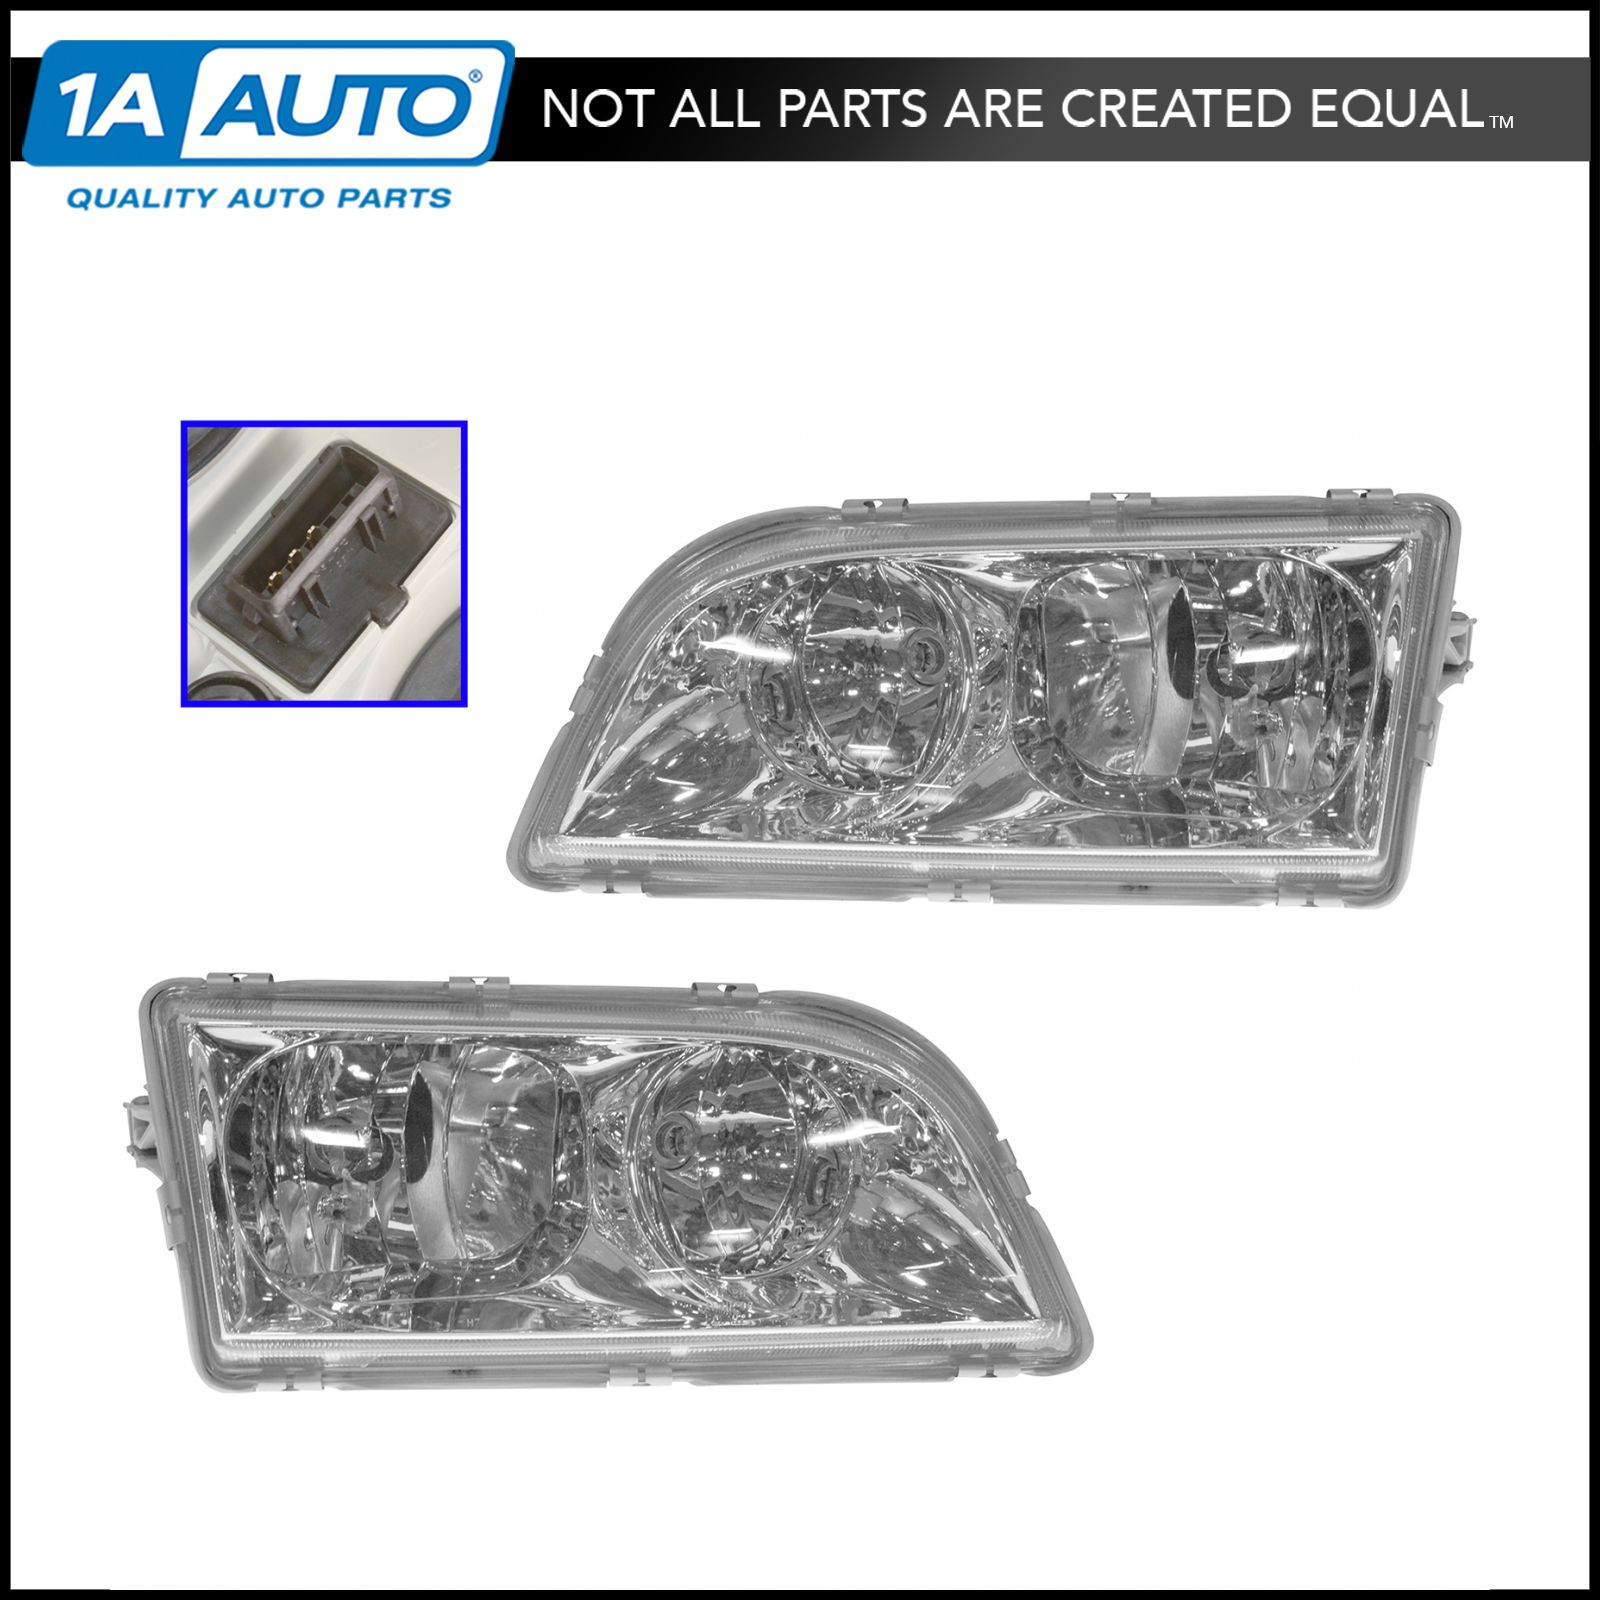 Details About Front Headlights Headlamps W Brackets Pair Set Kit For 00 04 Volvo S40 V40